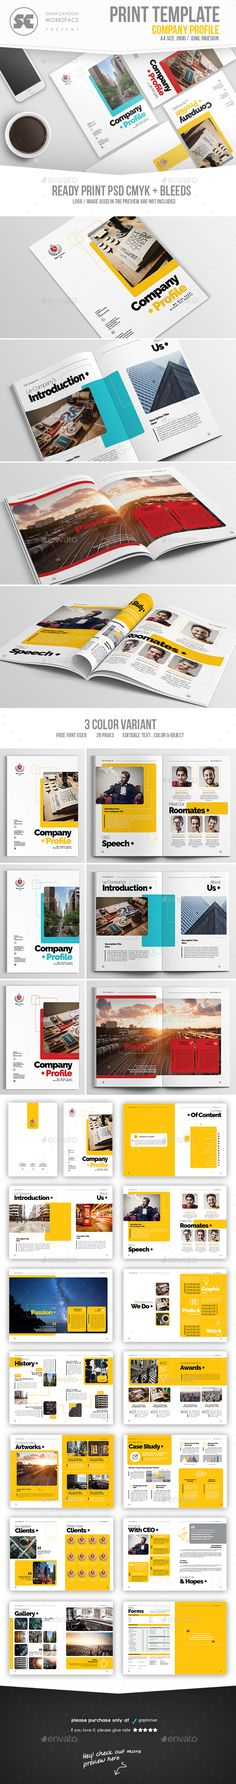 Corporate Brochure Company Profile 14 u2026 Pinteresu2026 - corporate profile template